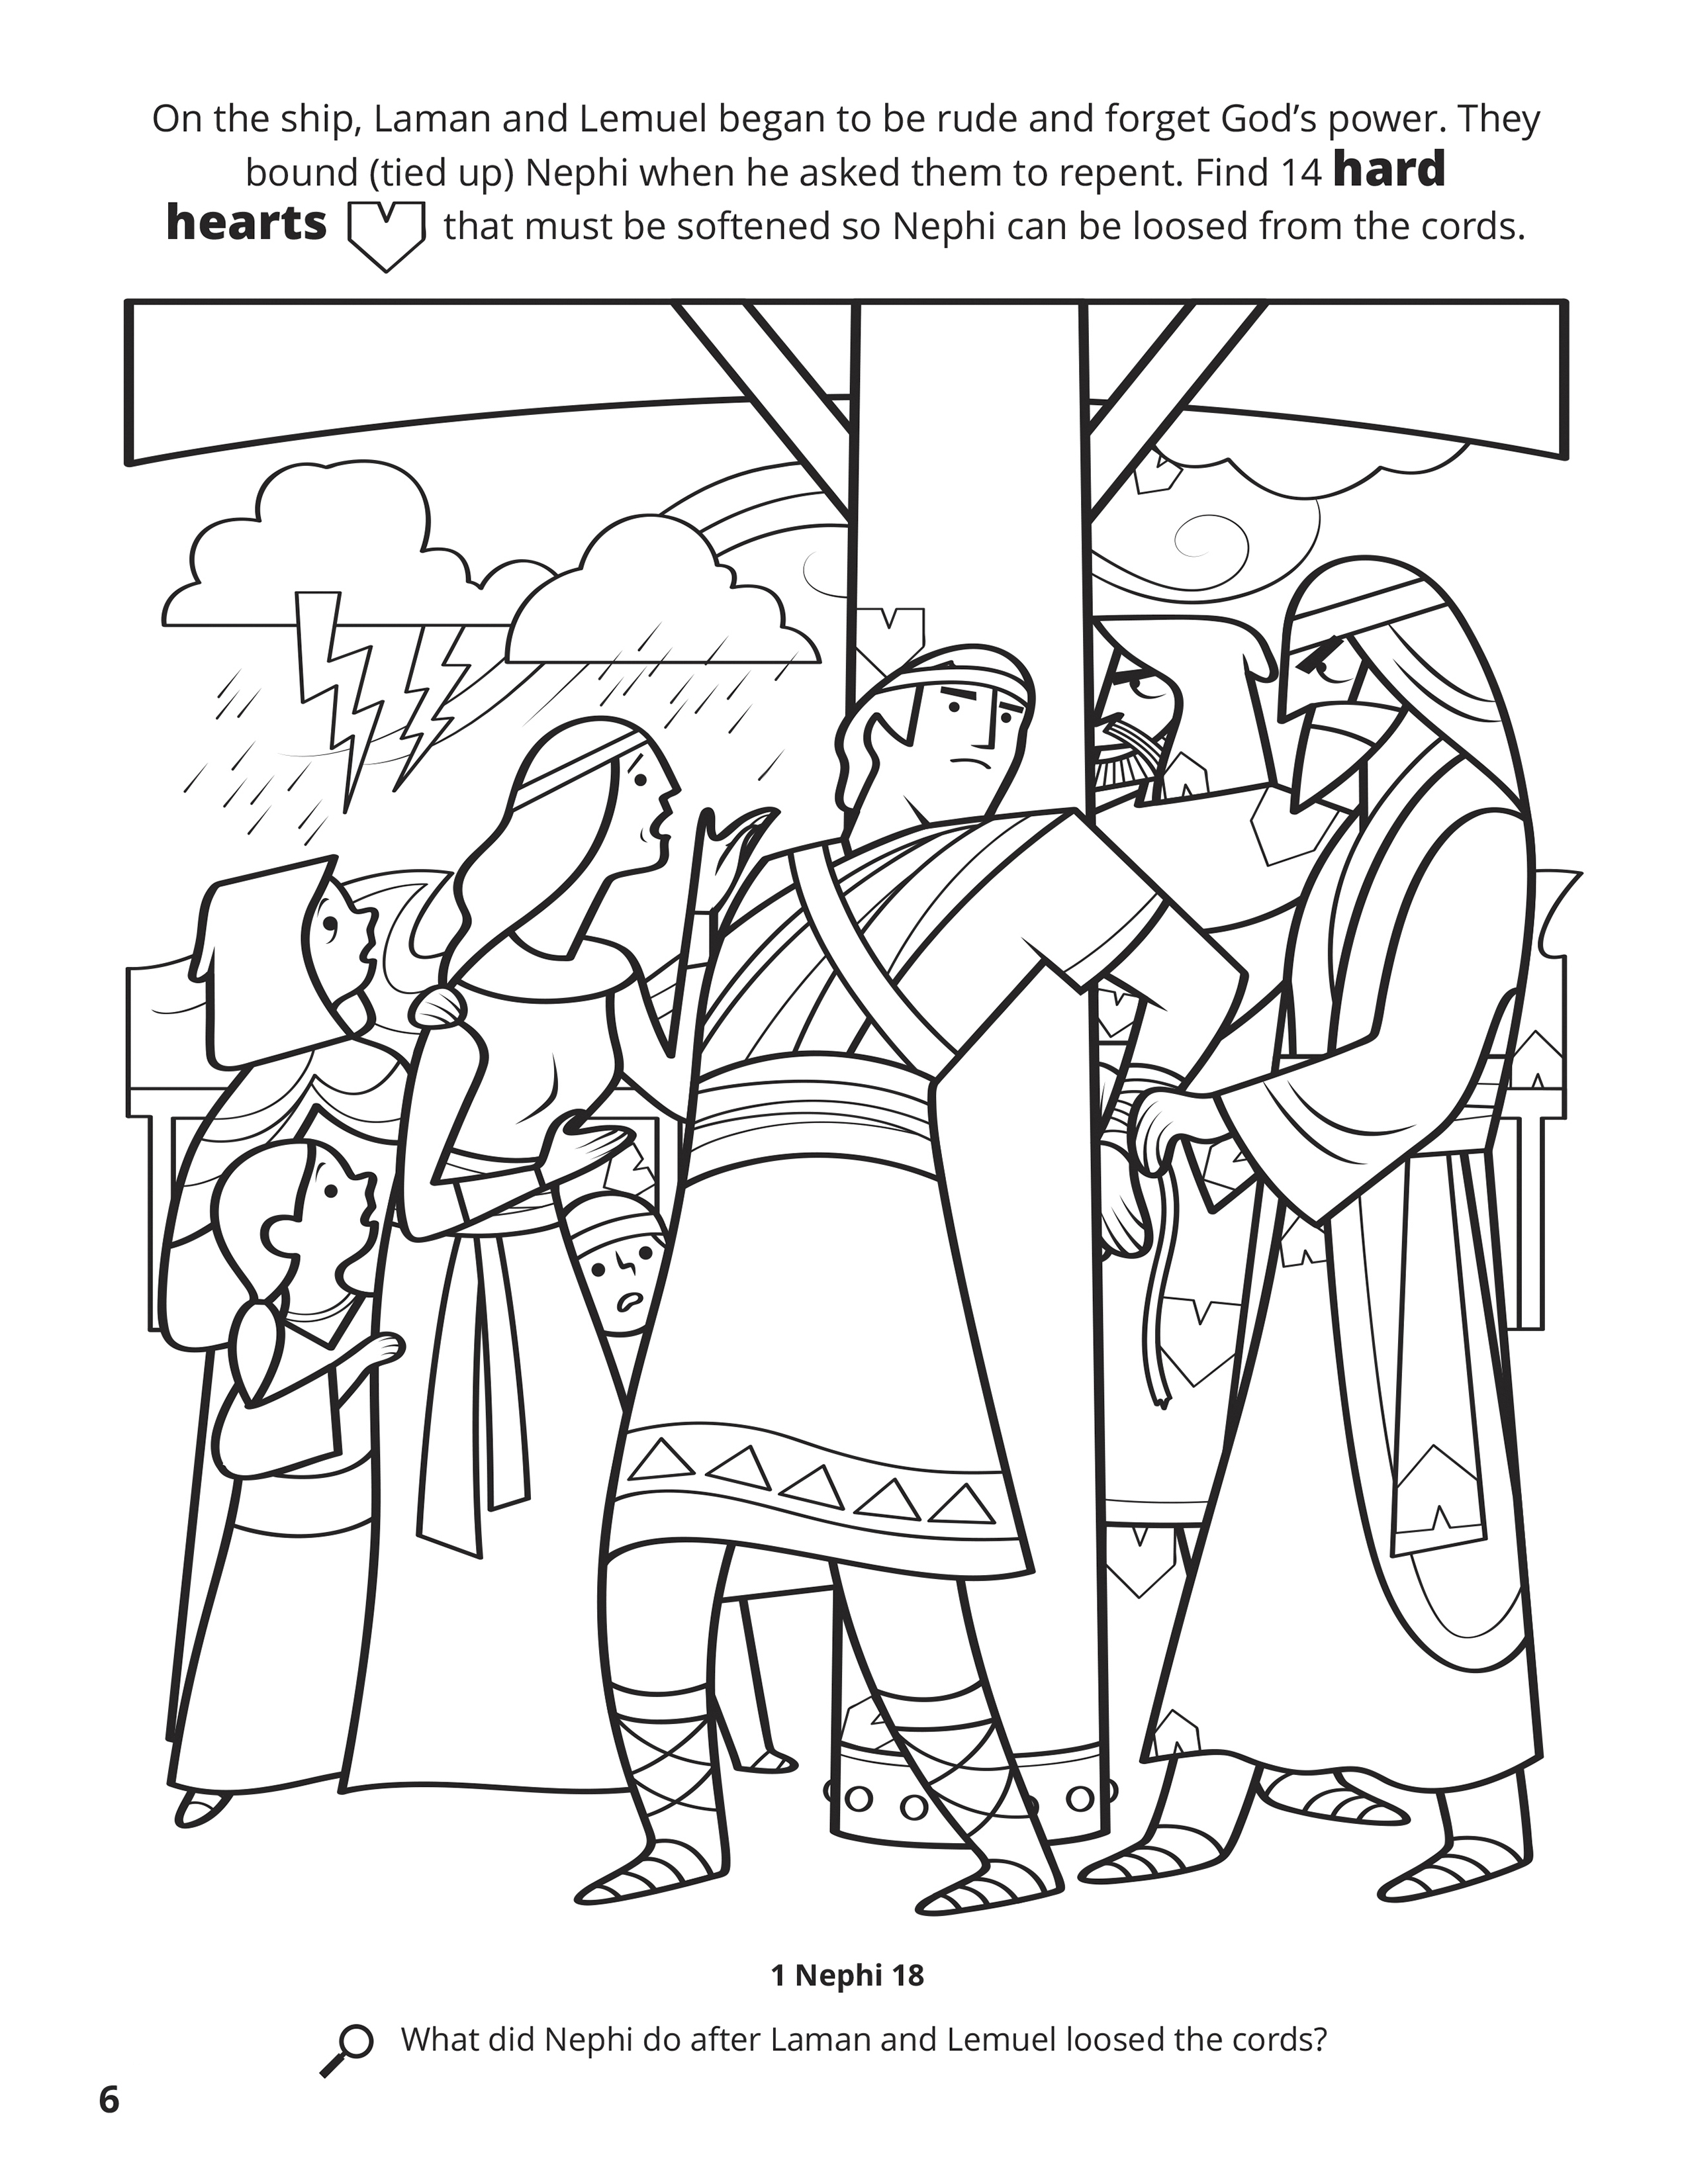 On the ship, Laman and Lemuel began to be rude and forget God's power. They bound (tied up) Nephi when he asked them to repent. Find 14 hard hearts that must be softened so Nephi can be loosed from the cords. Location in the Scriptures: 1 Nephi 18. Search the Scriptures: What did Nephi do after Laman and Lemuel loosed the cords?